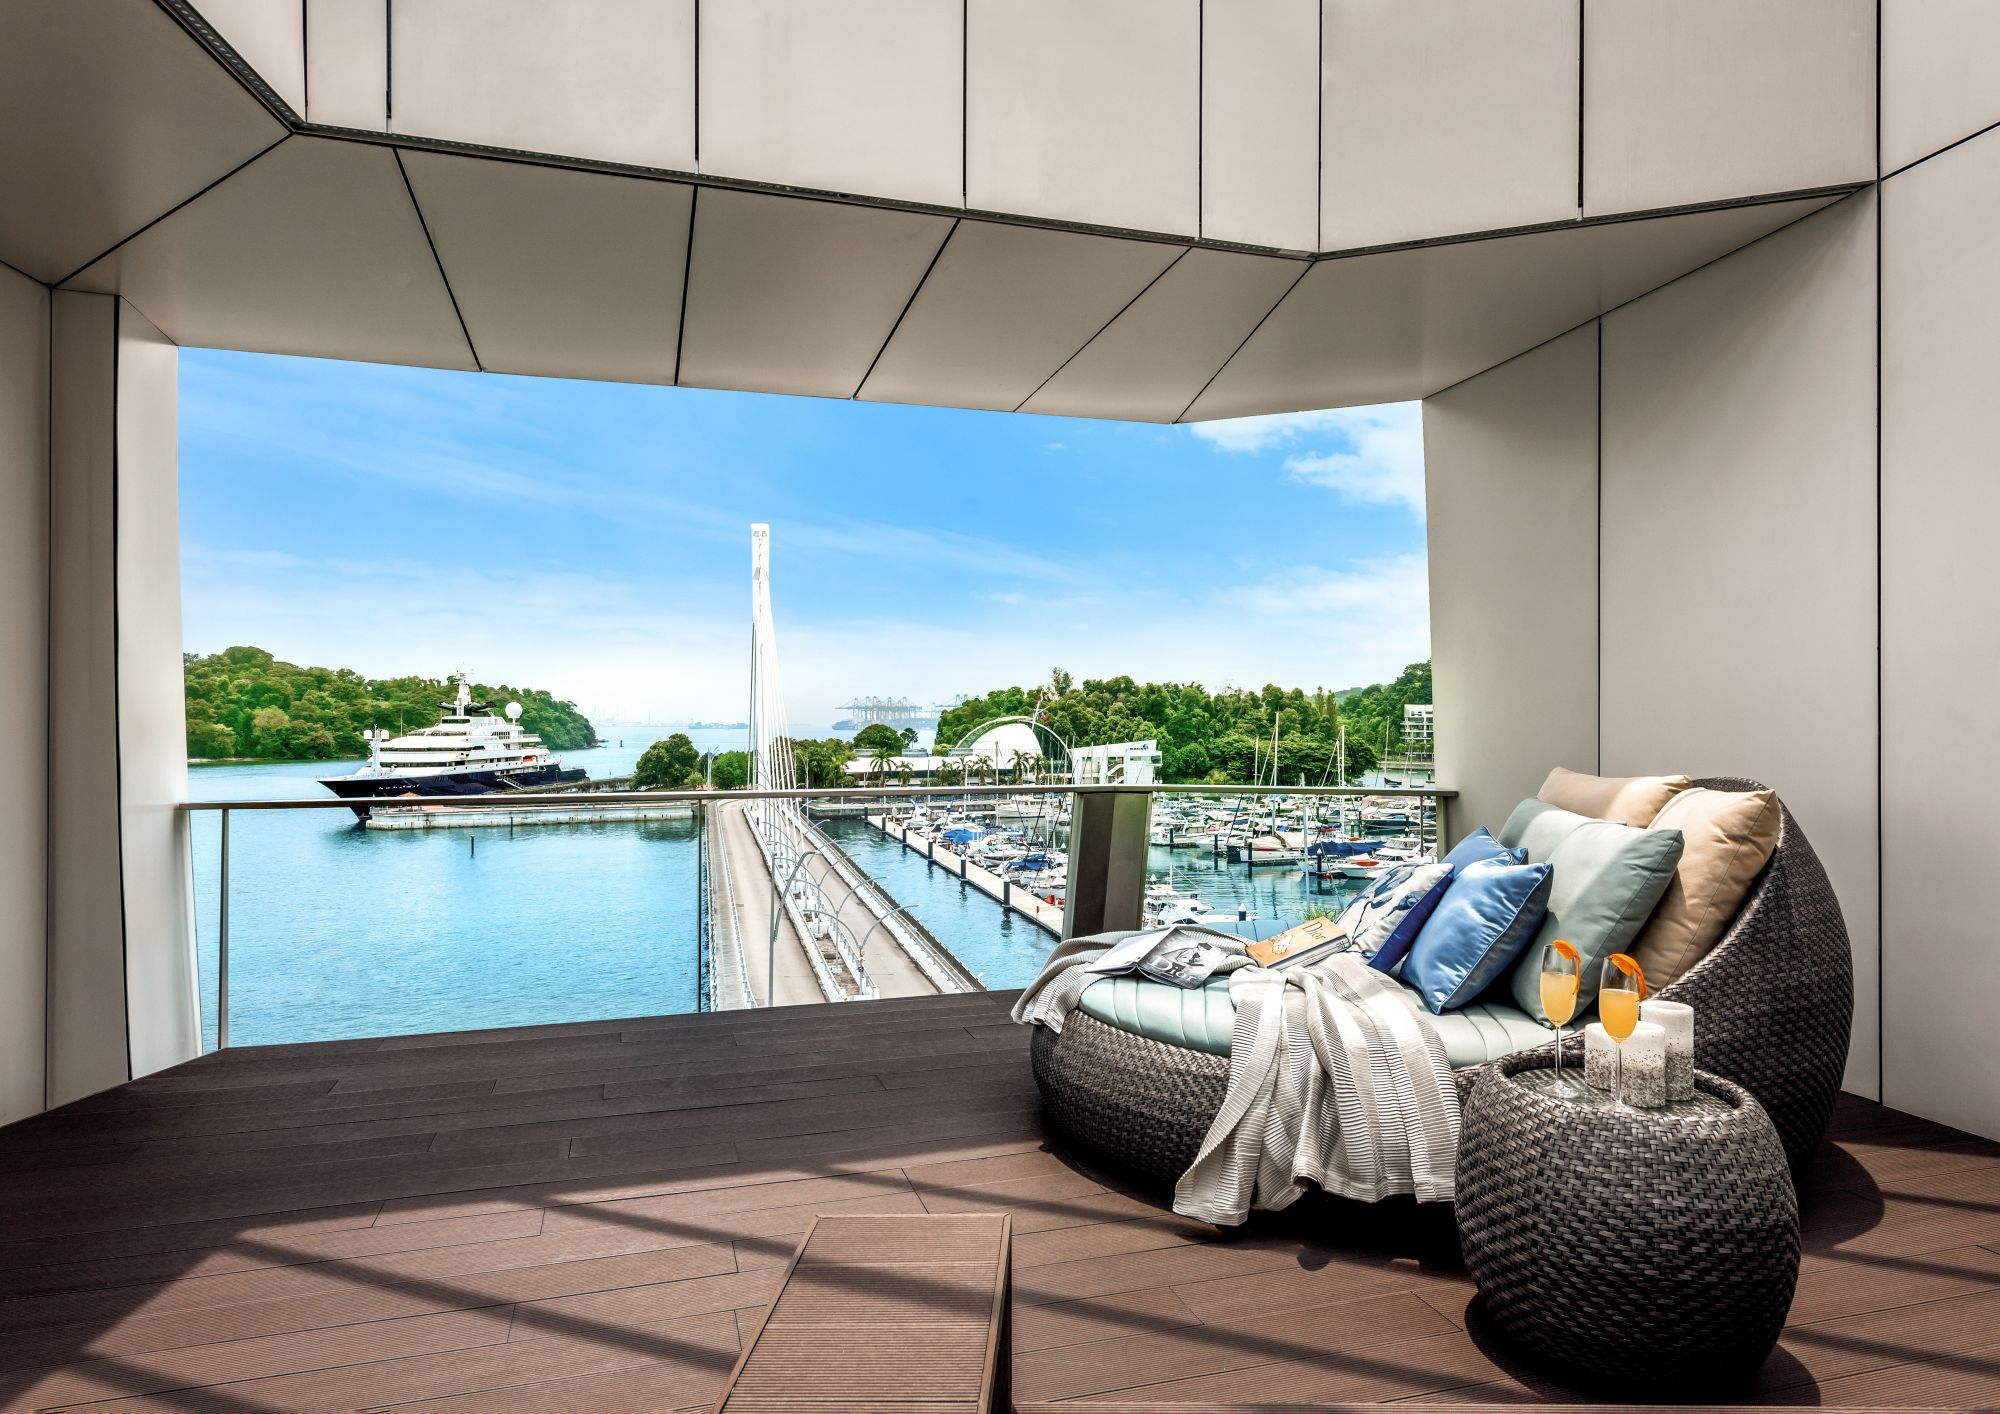 Get Home Improvement Inspiration From 3 Lavish Penthouses Designed by Prestige Global Designs